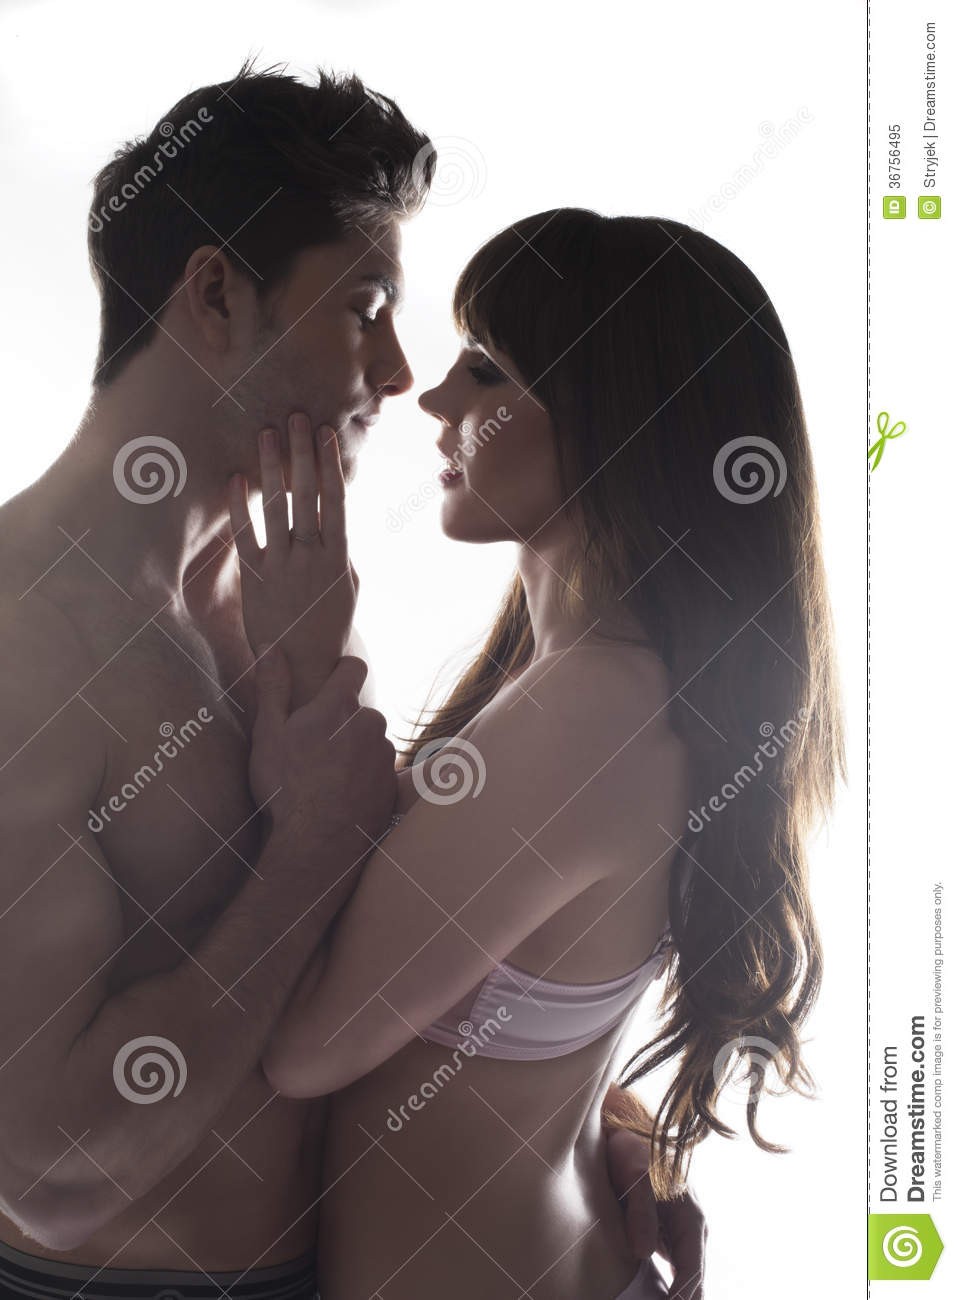 holding each other nude sexy pics